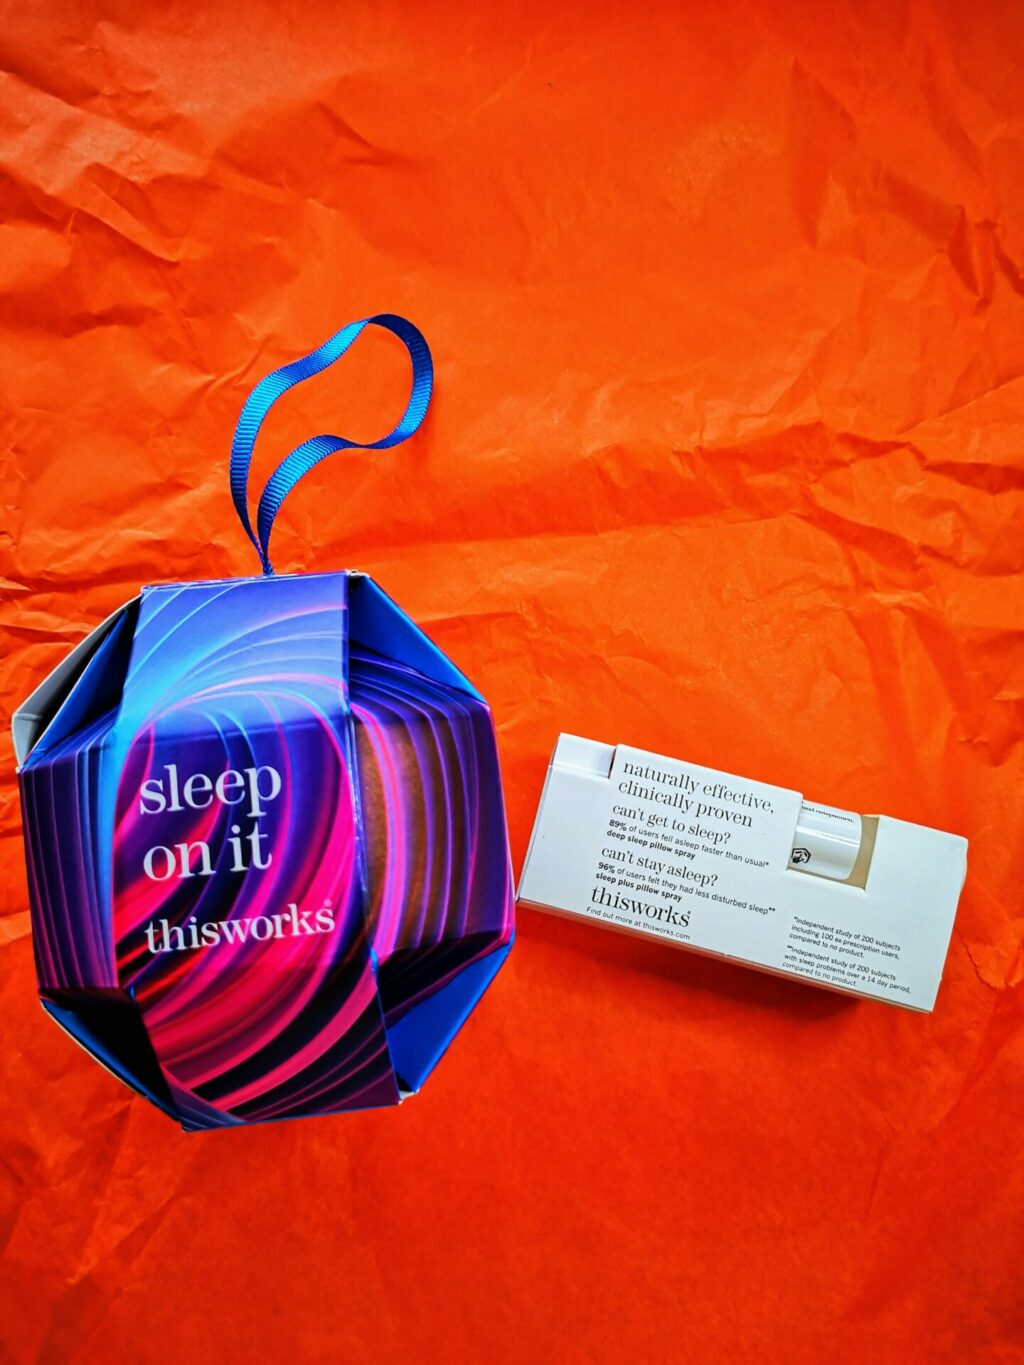 This Works Sleep On It Tree Decoration Bodycare Gift Set Gift Ideas for the Green Goddess Who Lives a Hip & Healthy Lifestyle